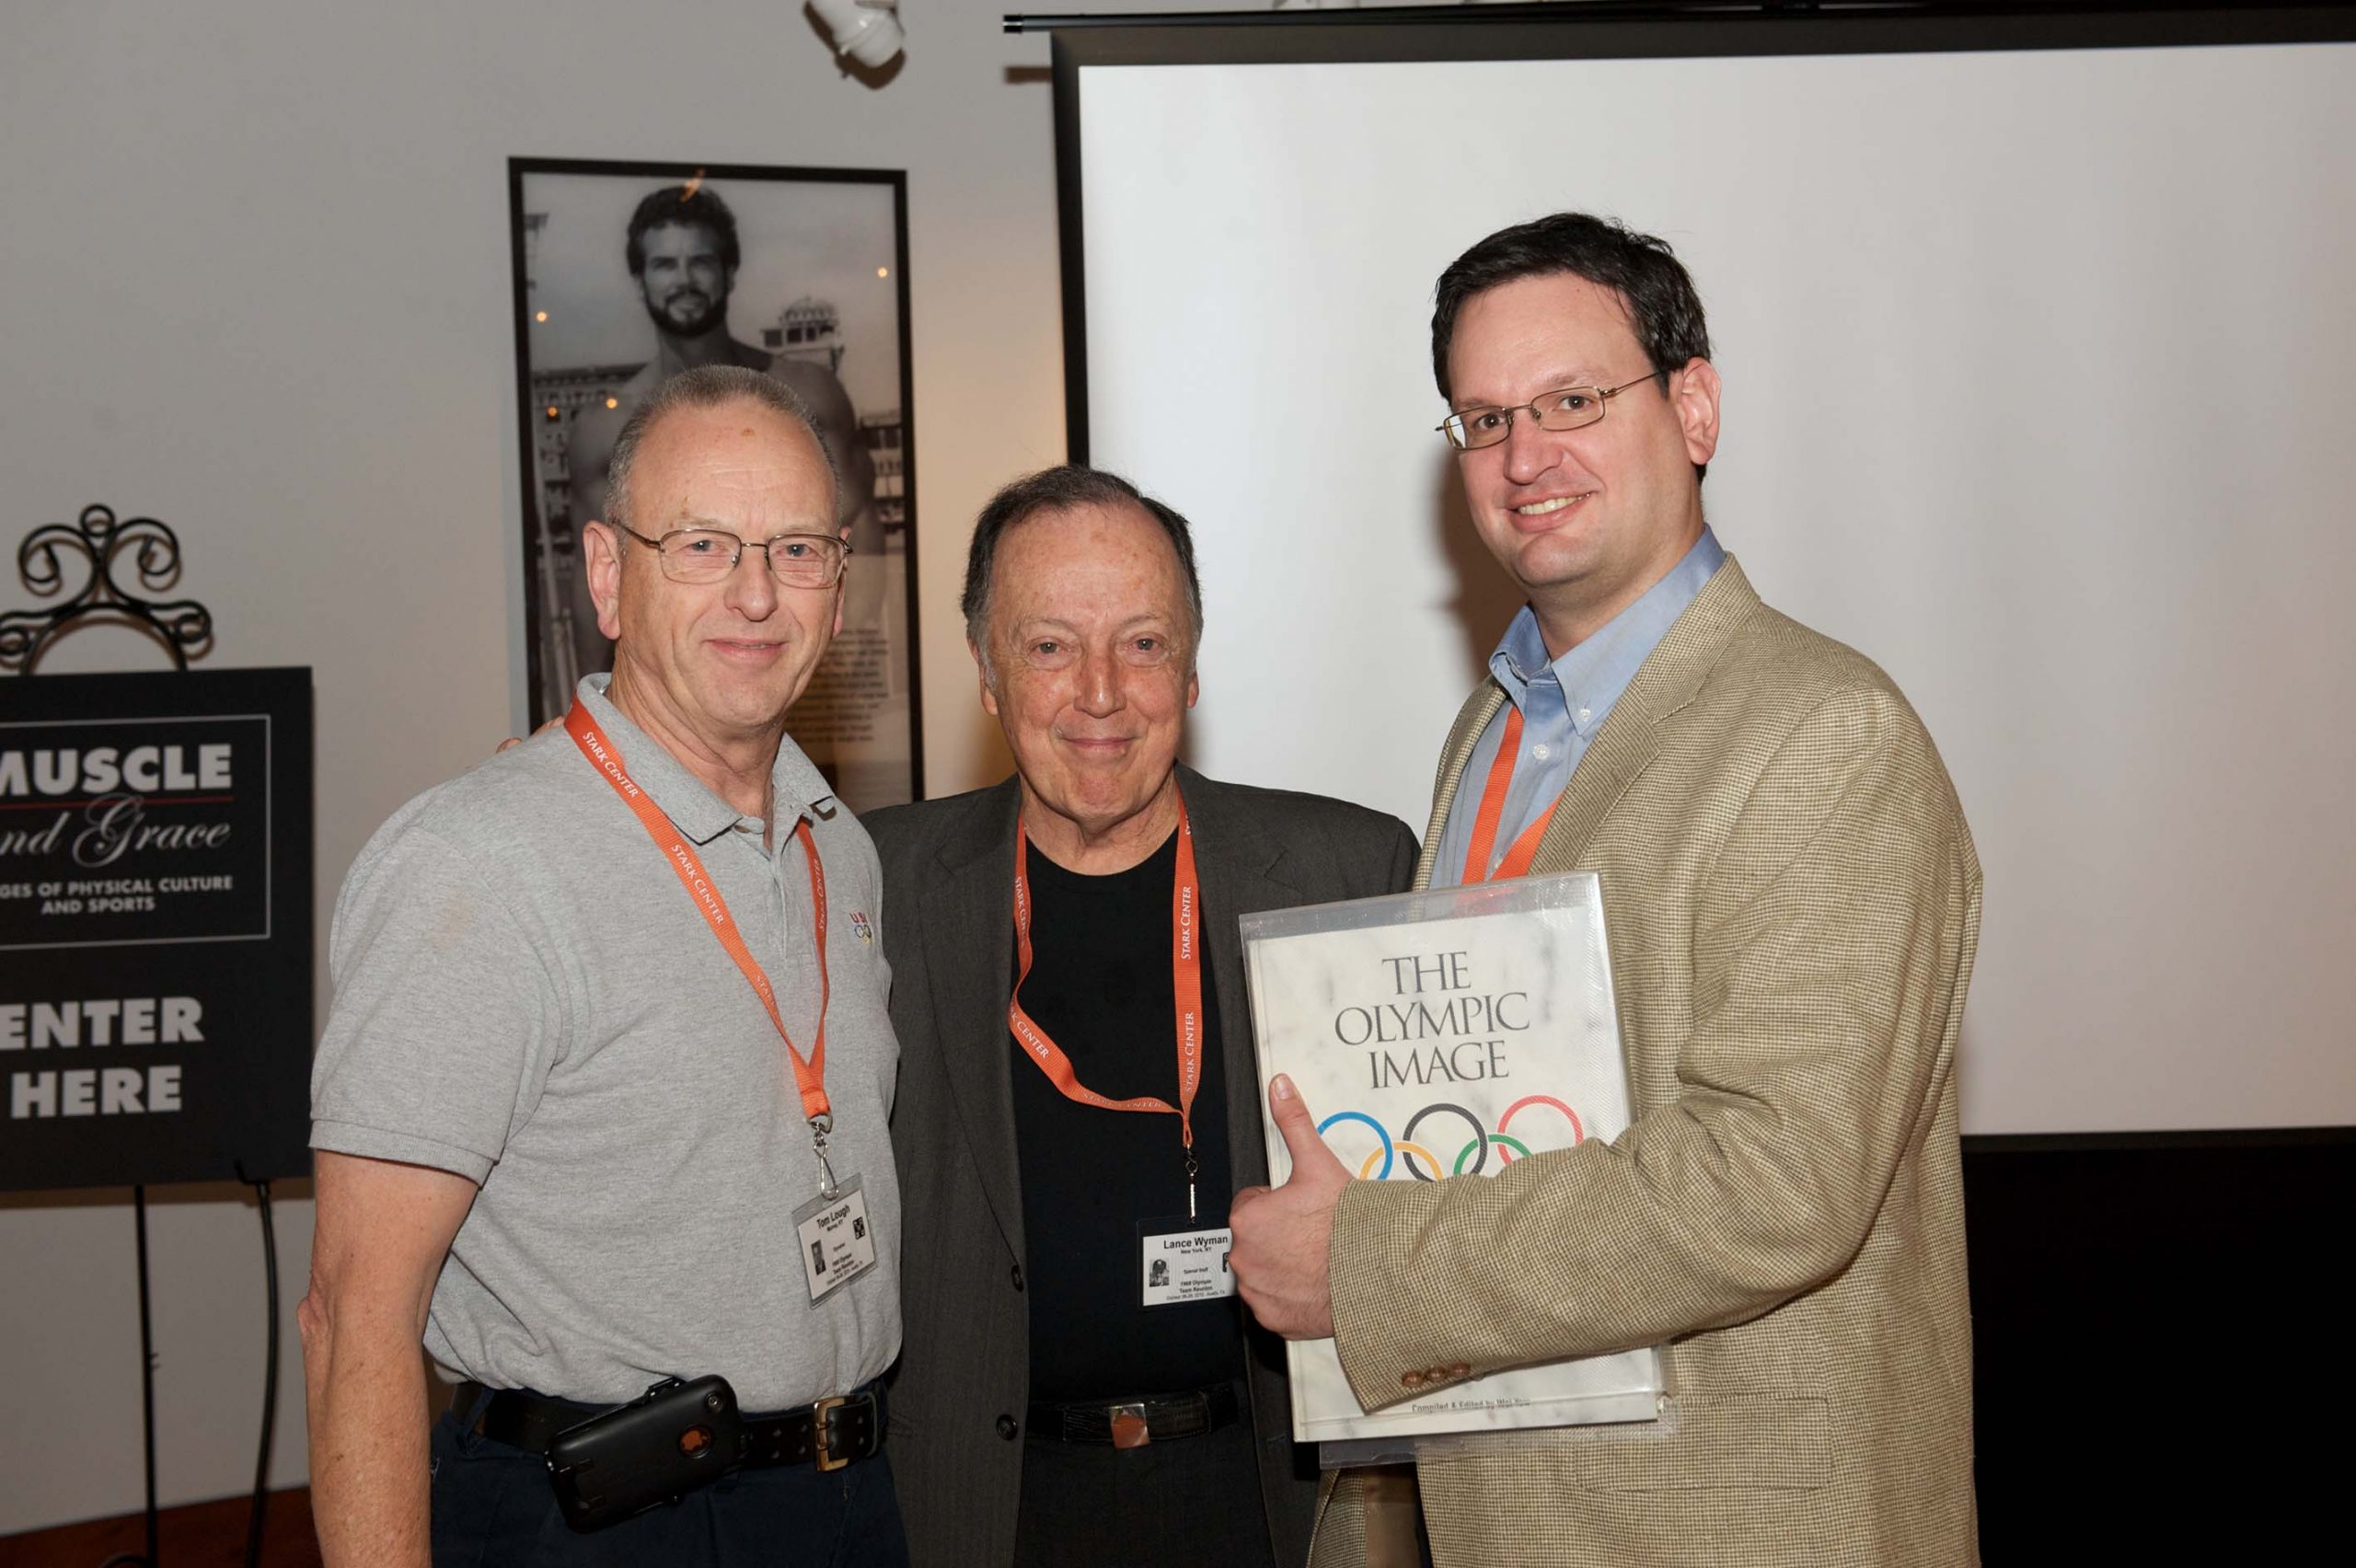 Tom Lough, Thomas M. Hunt and another man, at the 1968 U.S. Olympic Team 2012 Reunion.